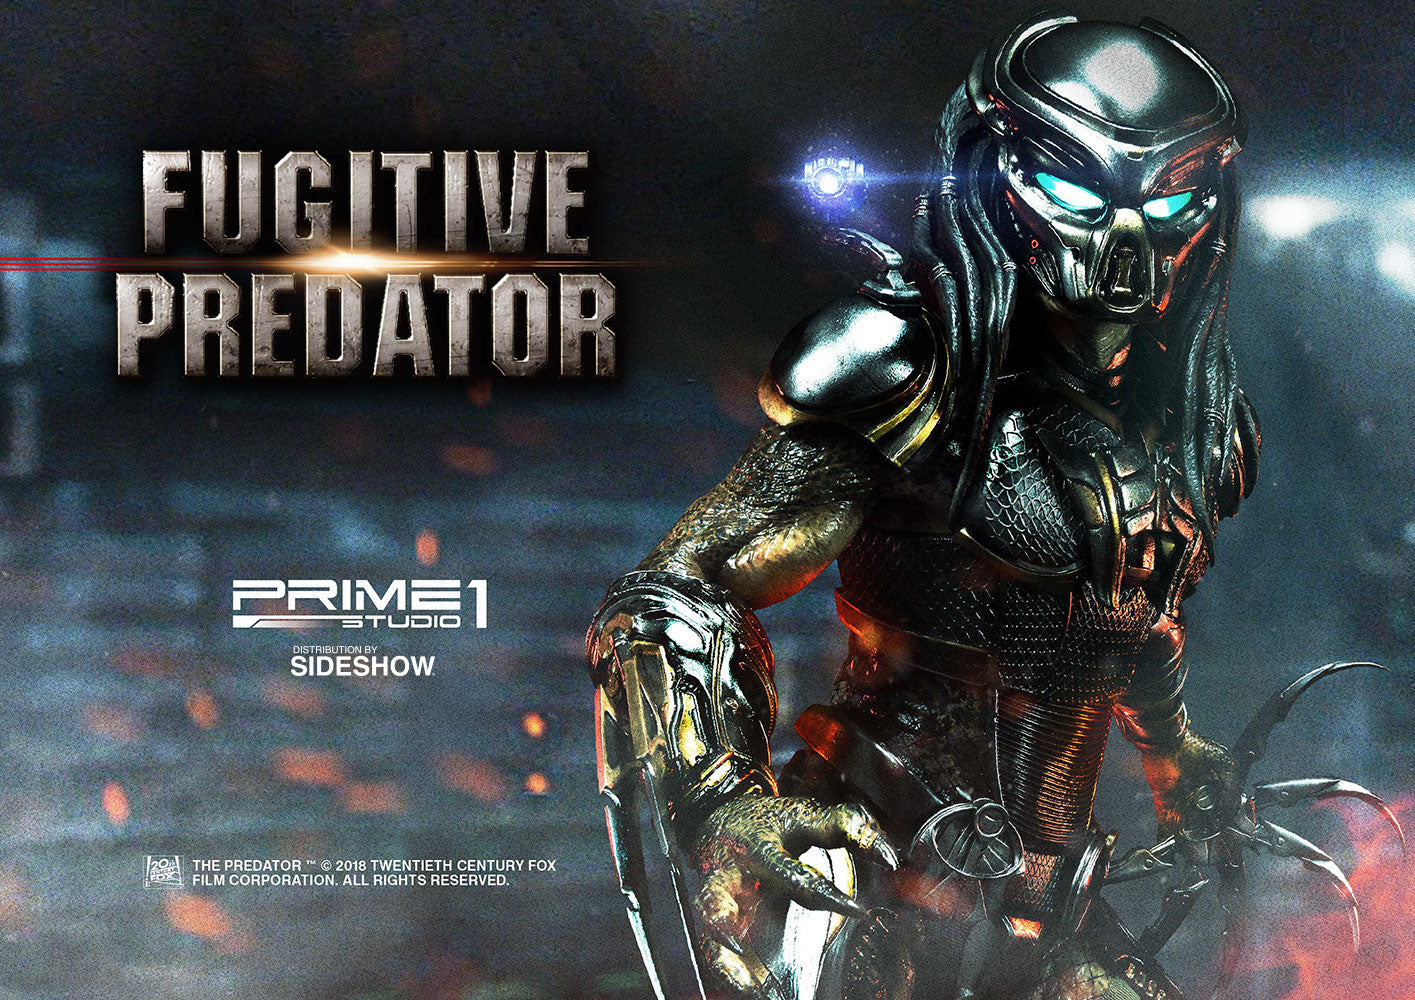 The Predator - Fugitive Predator Statue